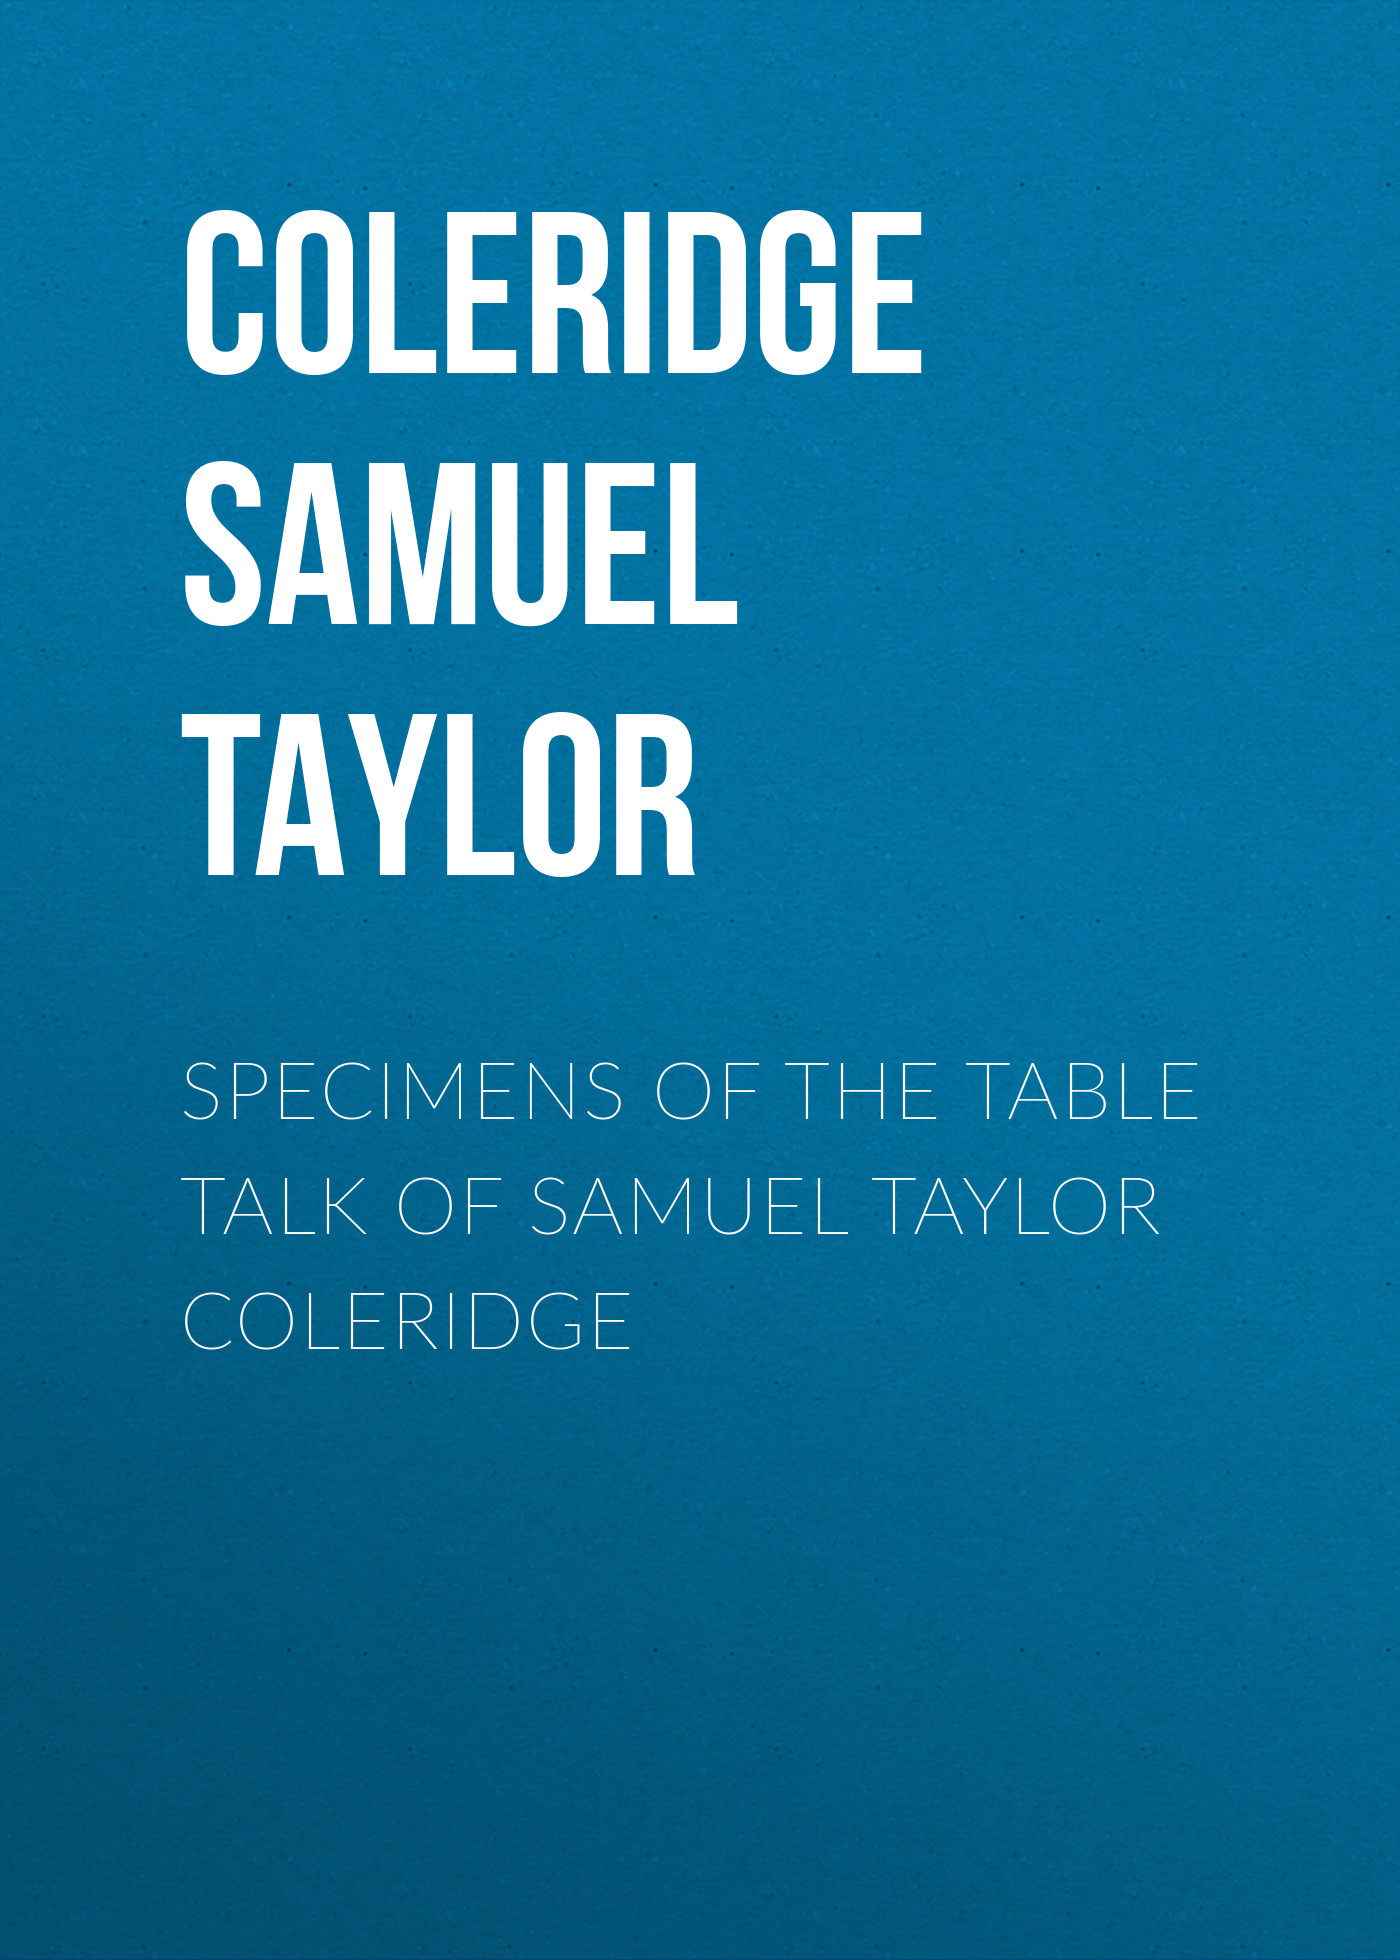 Coleridge Samuel Taylor Specimens of the Table Talk of Samuel Taylor Coleridge joanne shaw taylor joanne shaw taylor the dirty truth